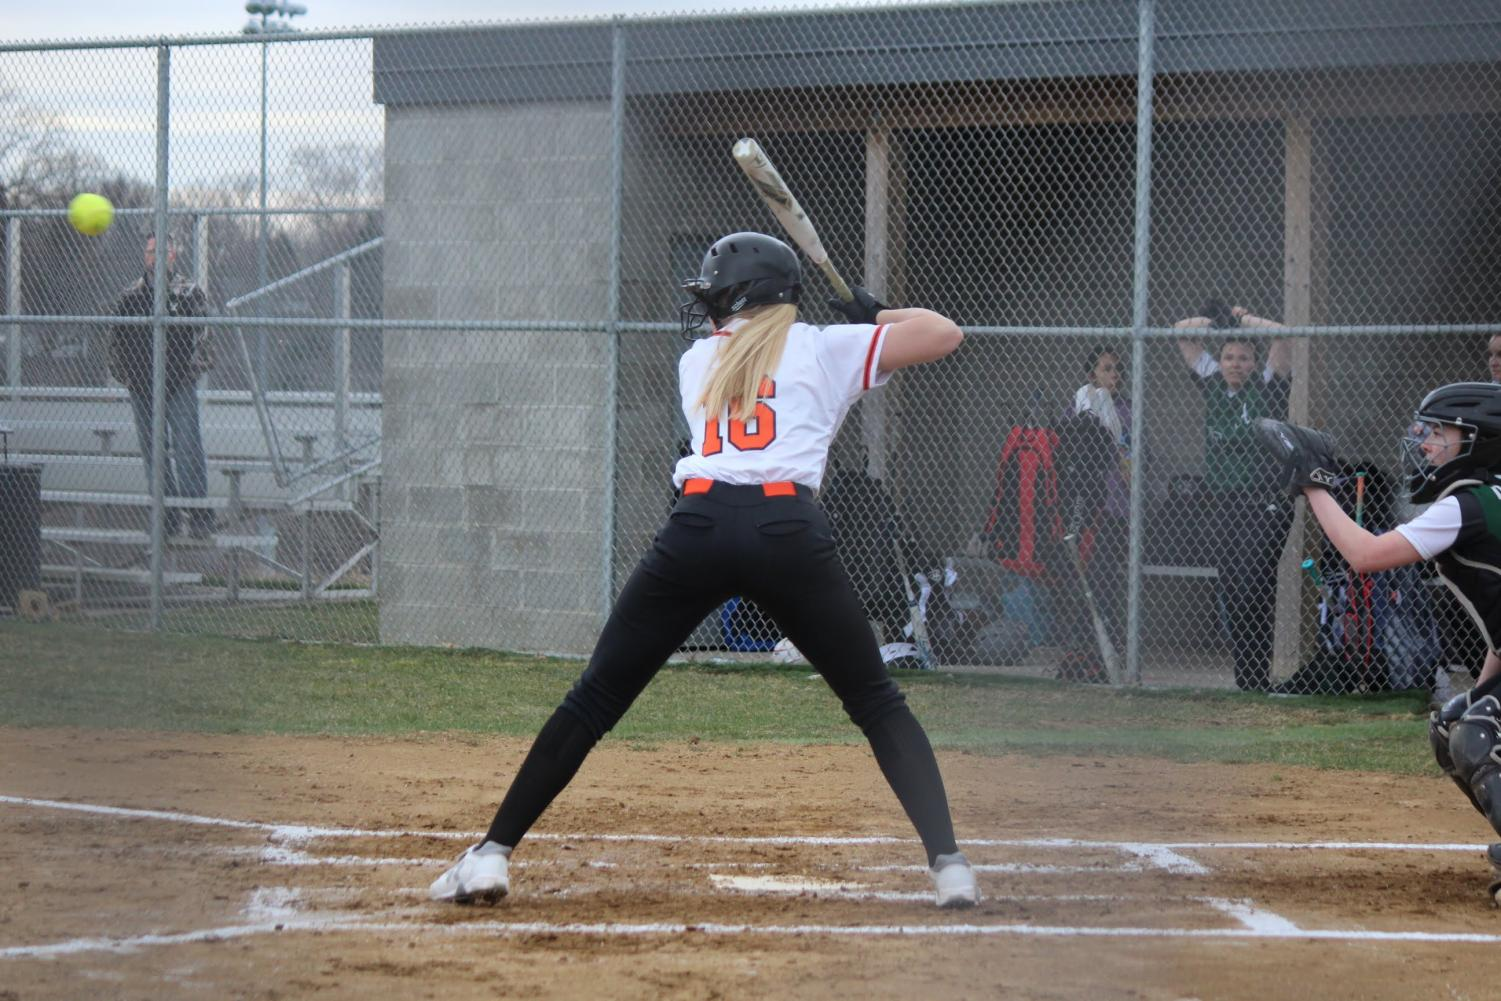 Reagan Milliken prepares to the hit during the Lady Hawks game vs. Allderdice on March 28.